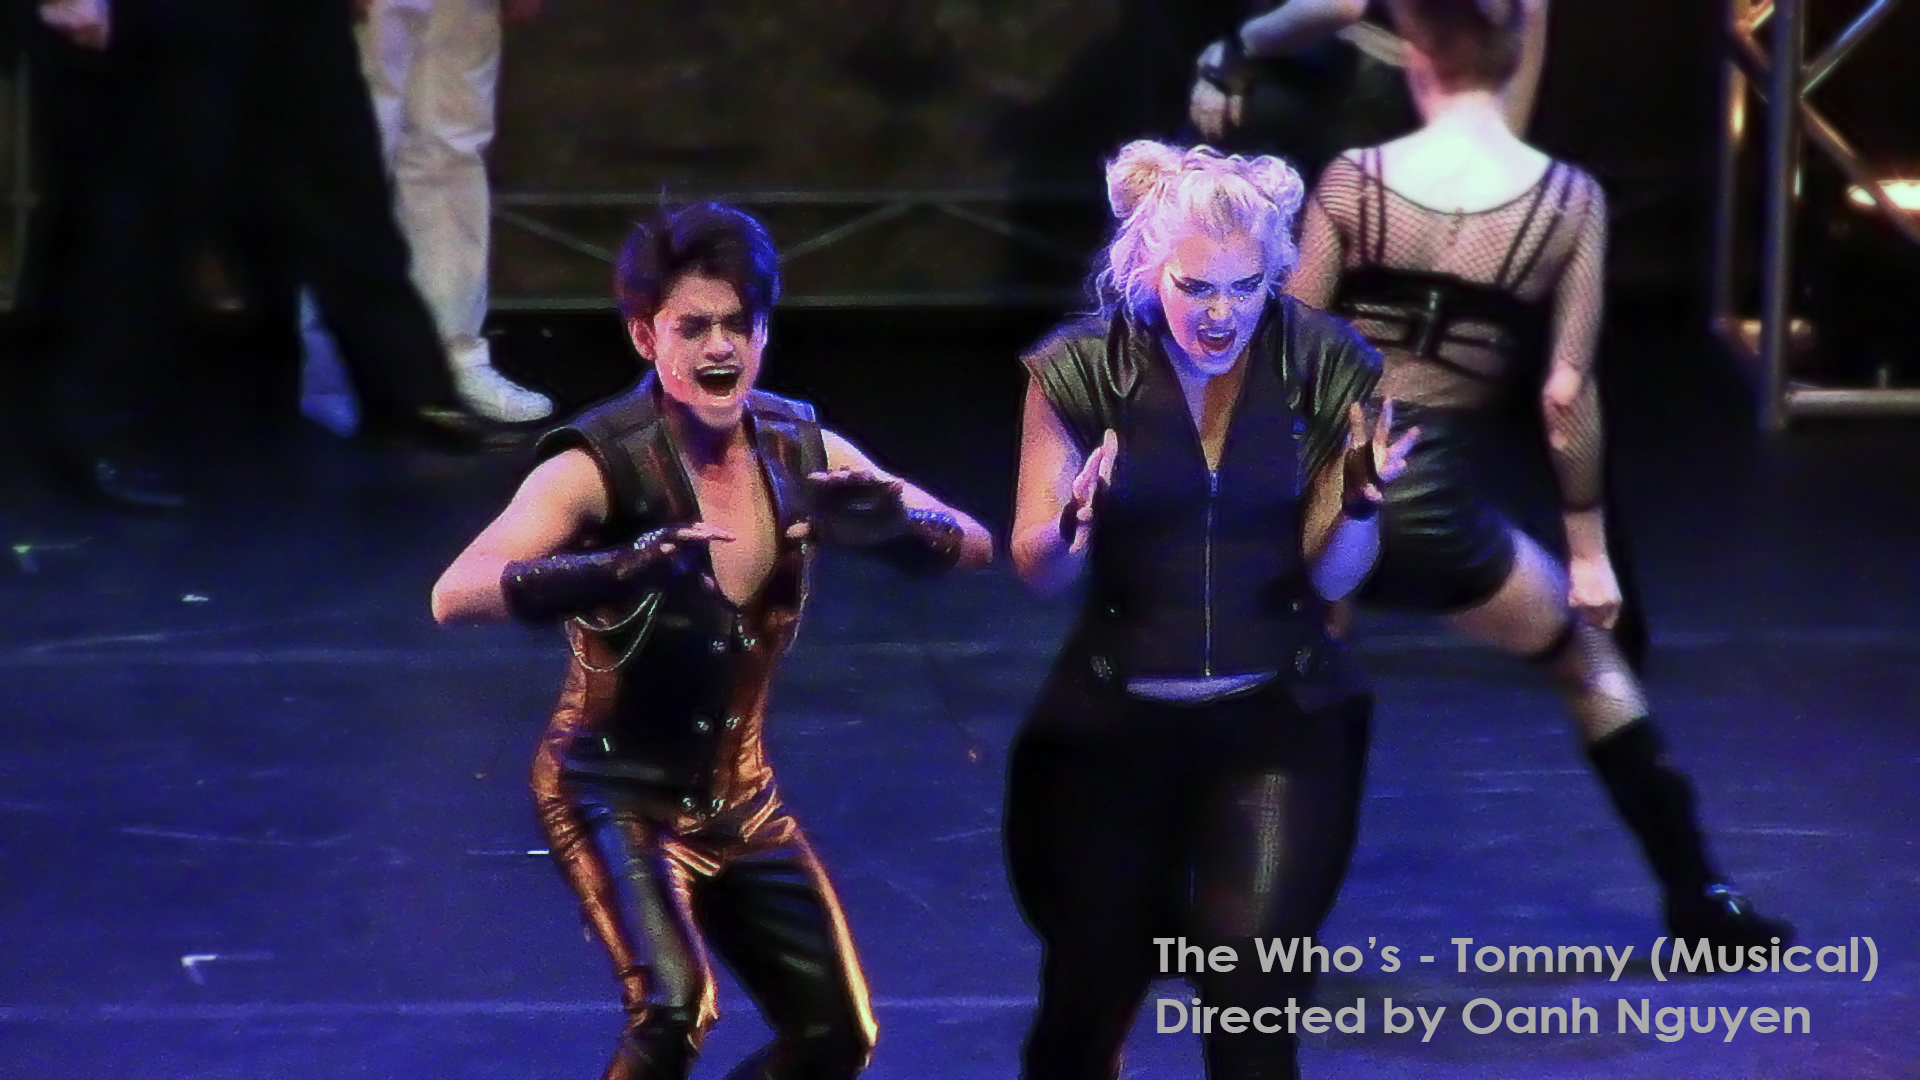 The Who's Tommy (Musical) - Directed by Oanh Nguyen